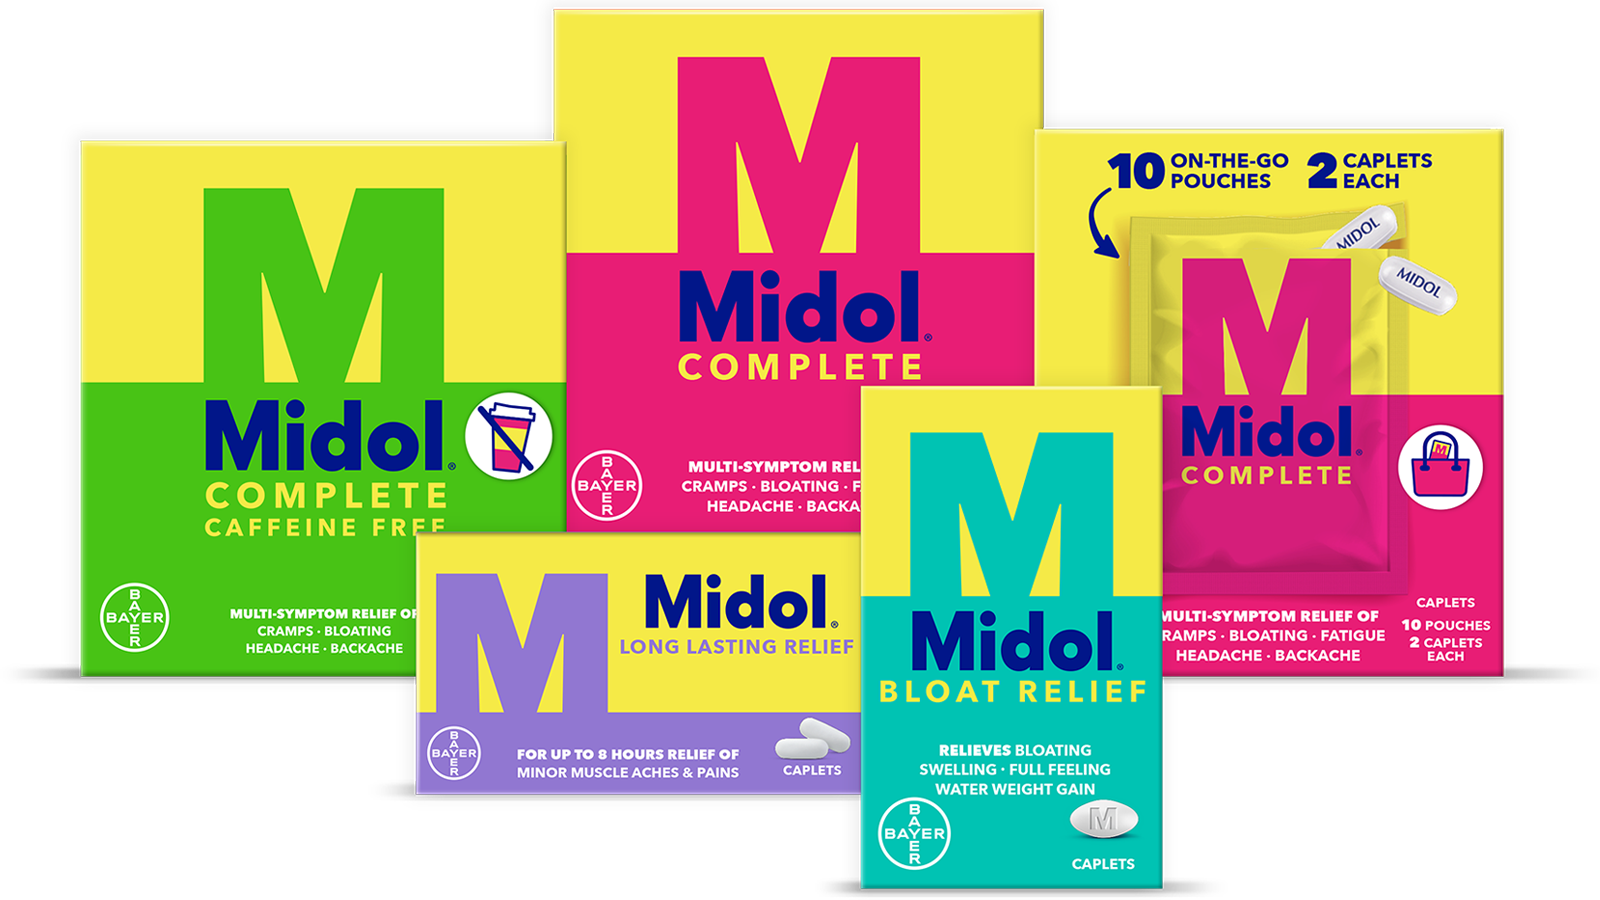 Four boxes of Midol® Complete, Midol® Complete Caffeine Free, Midol® Complete On-The-Go and Midol® Long Lasting Relief medicine